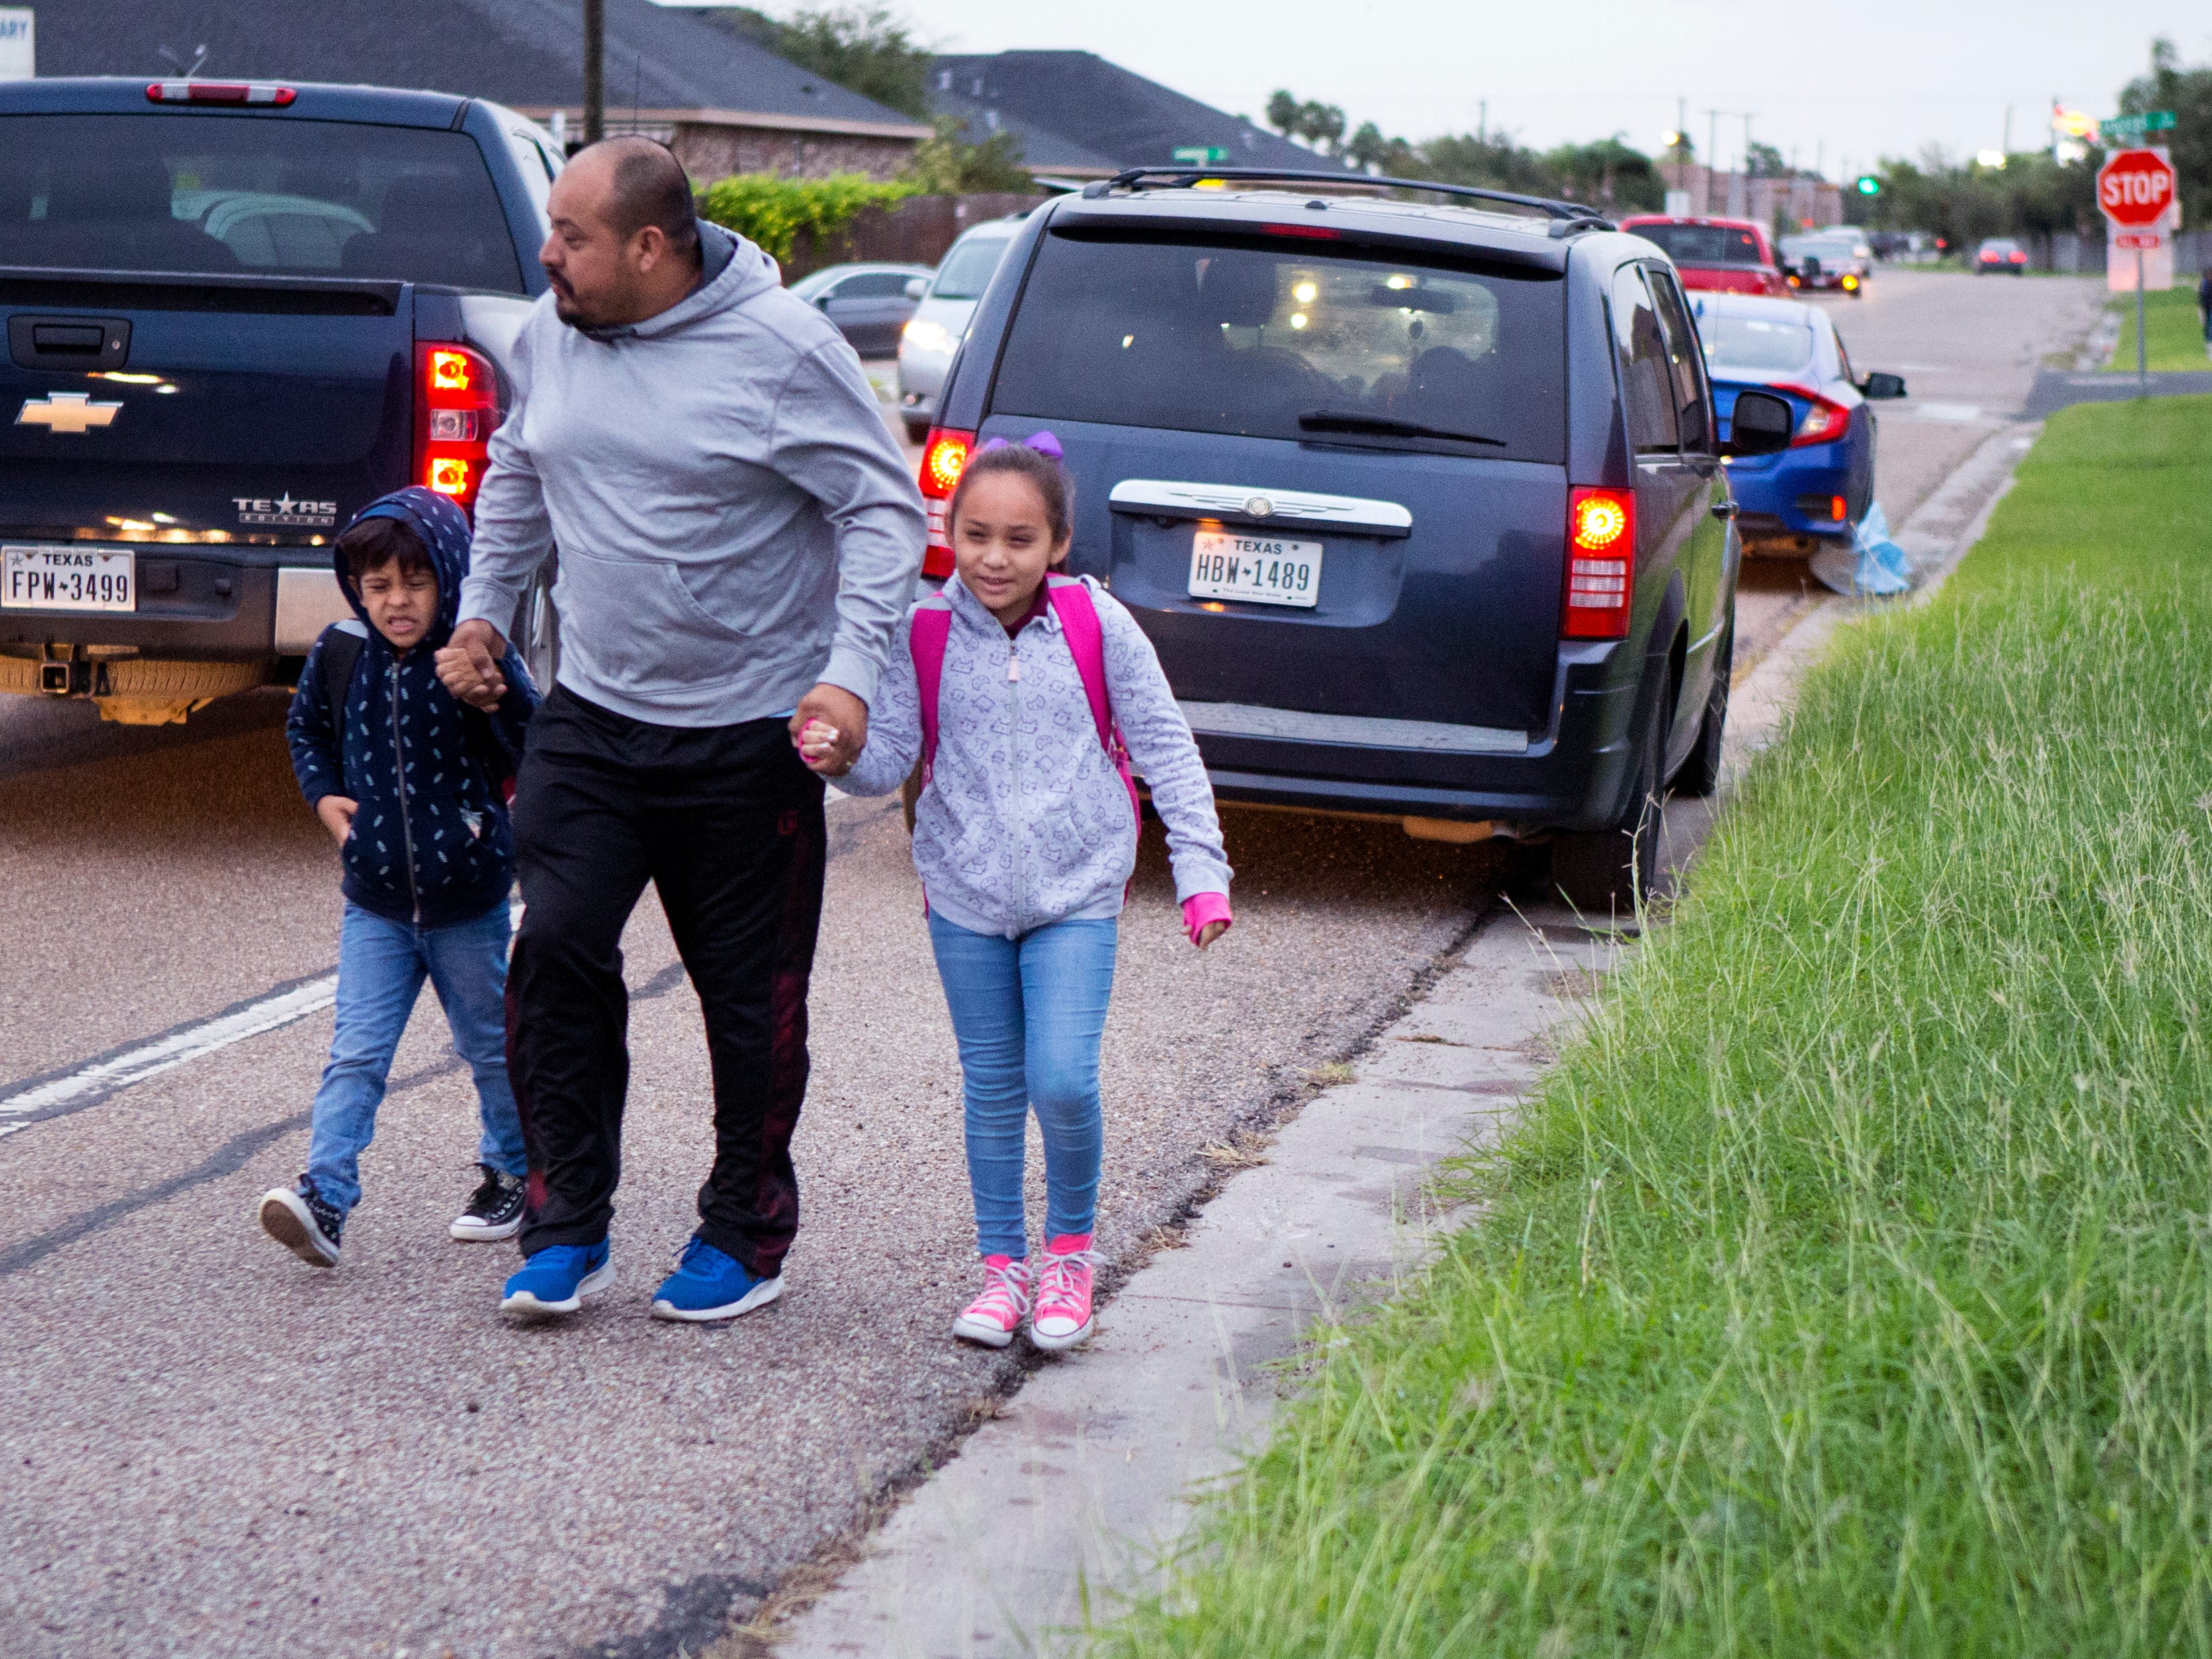 Edgar Alaniz Jr. (from left), 7, Edgar Alaniz and Alexa Alaniz, 8, head to school at at Dawson Elementary School on Tuesday, October 16, 2018. The Coastal Bend will continue to see isolated showers and thunderstorms in the early part of the week and get slightly warmer toward the weekend.